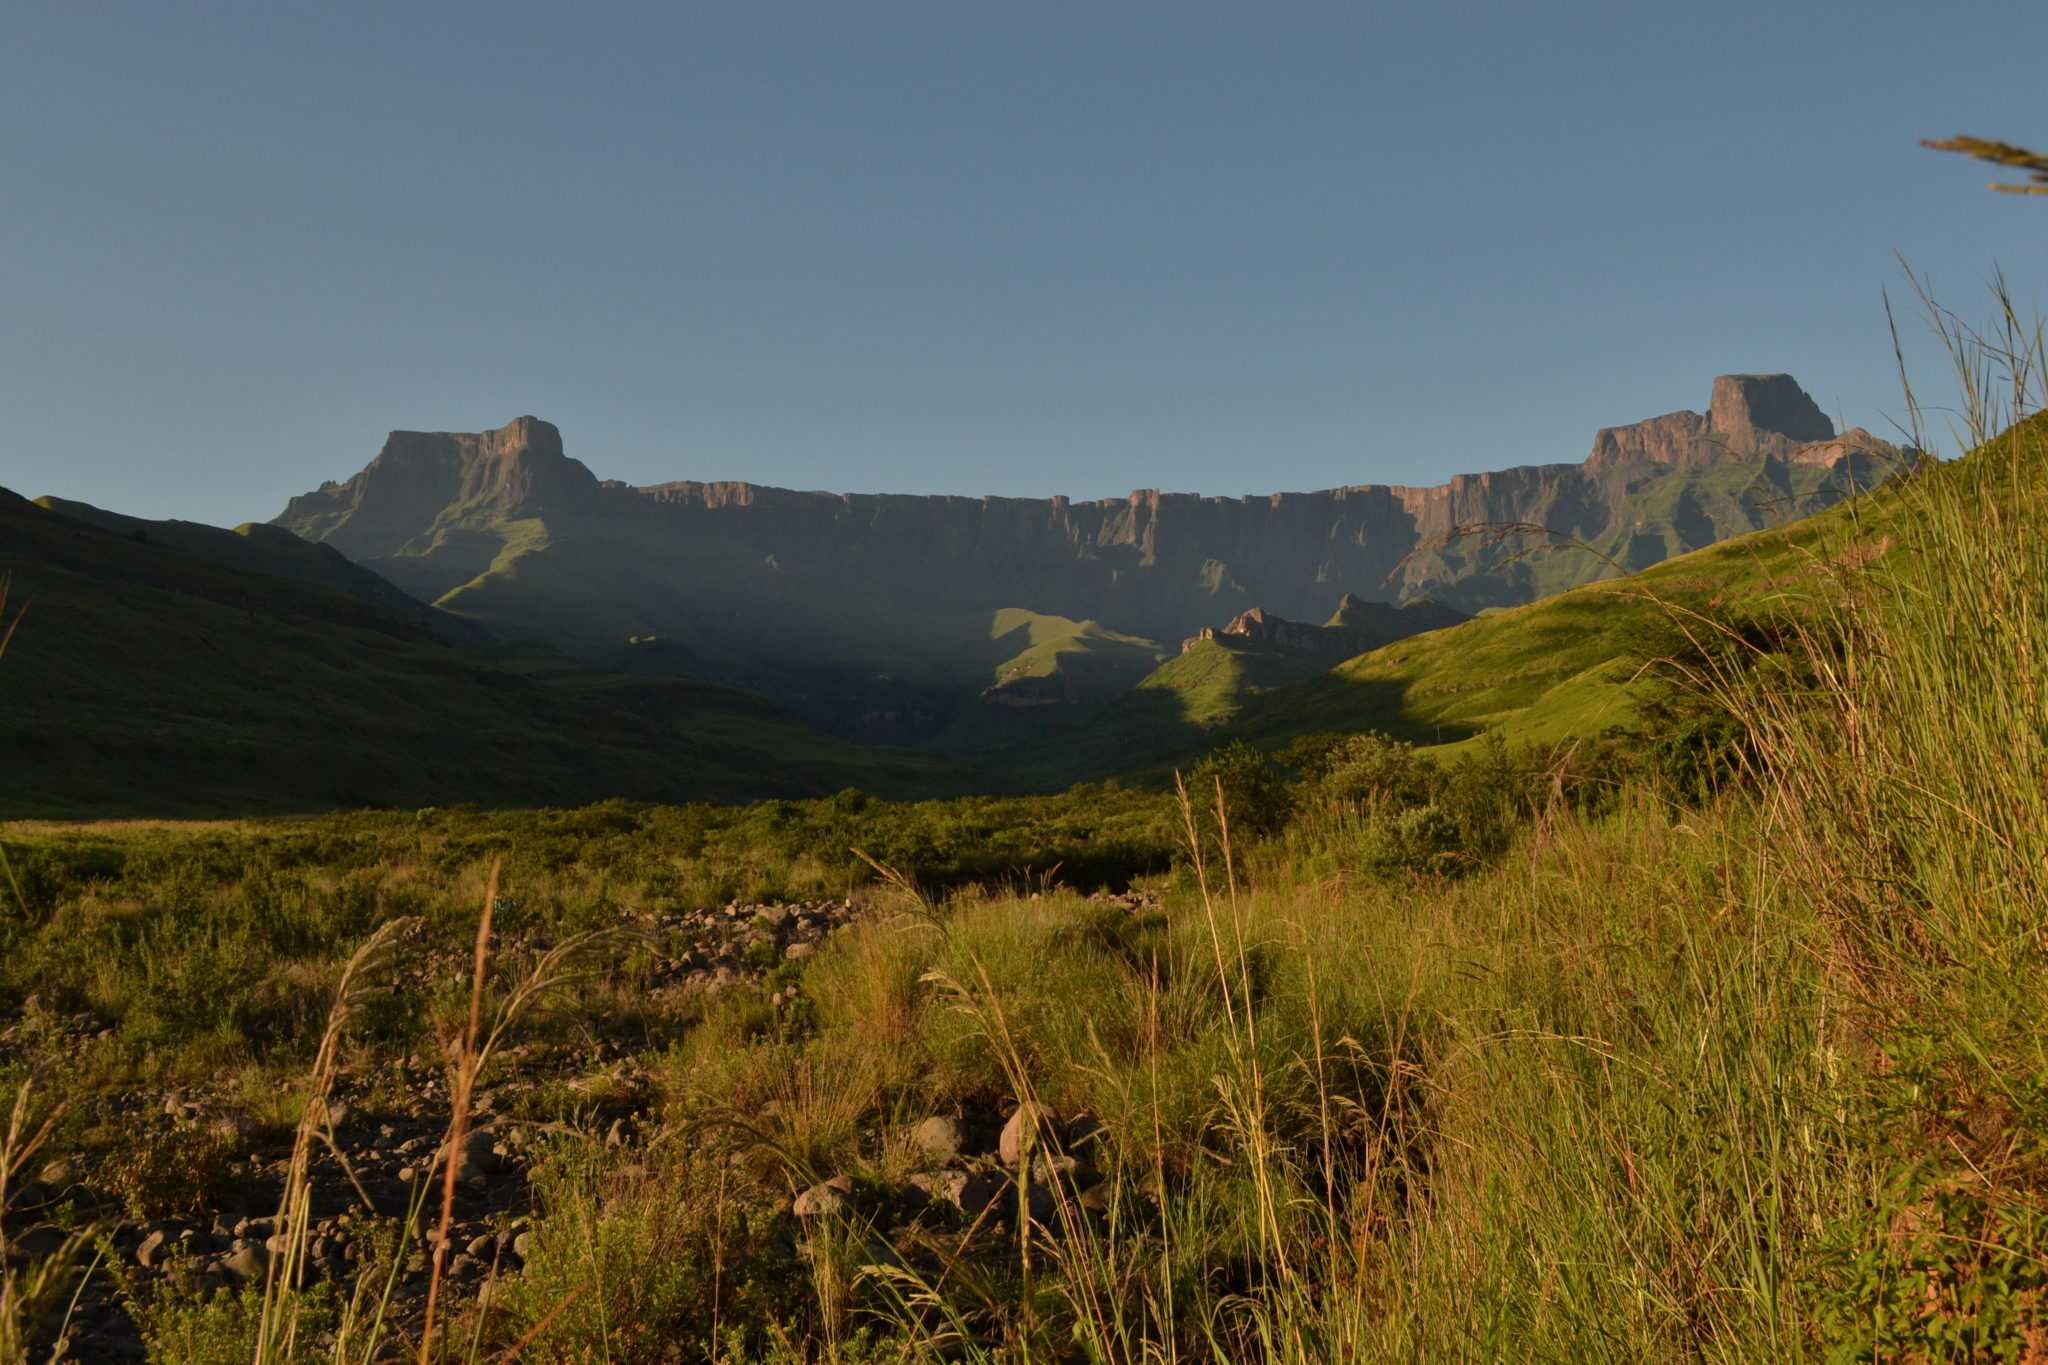 The Northern Drakensberg Tour has the mighty Amphitheater mountain range